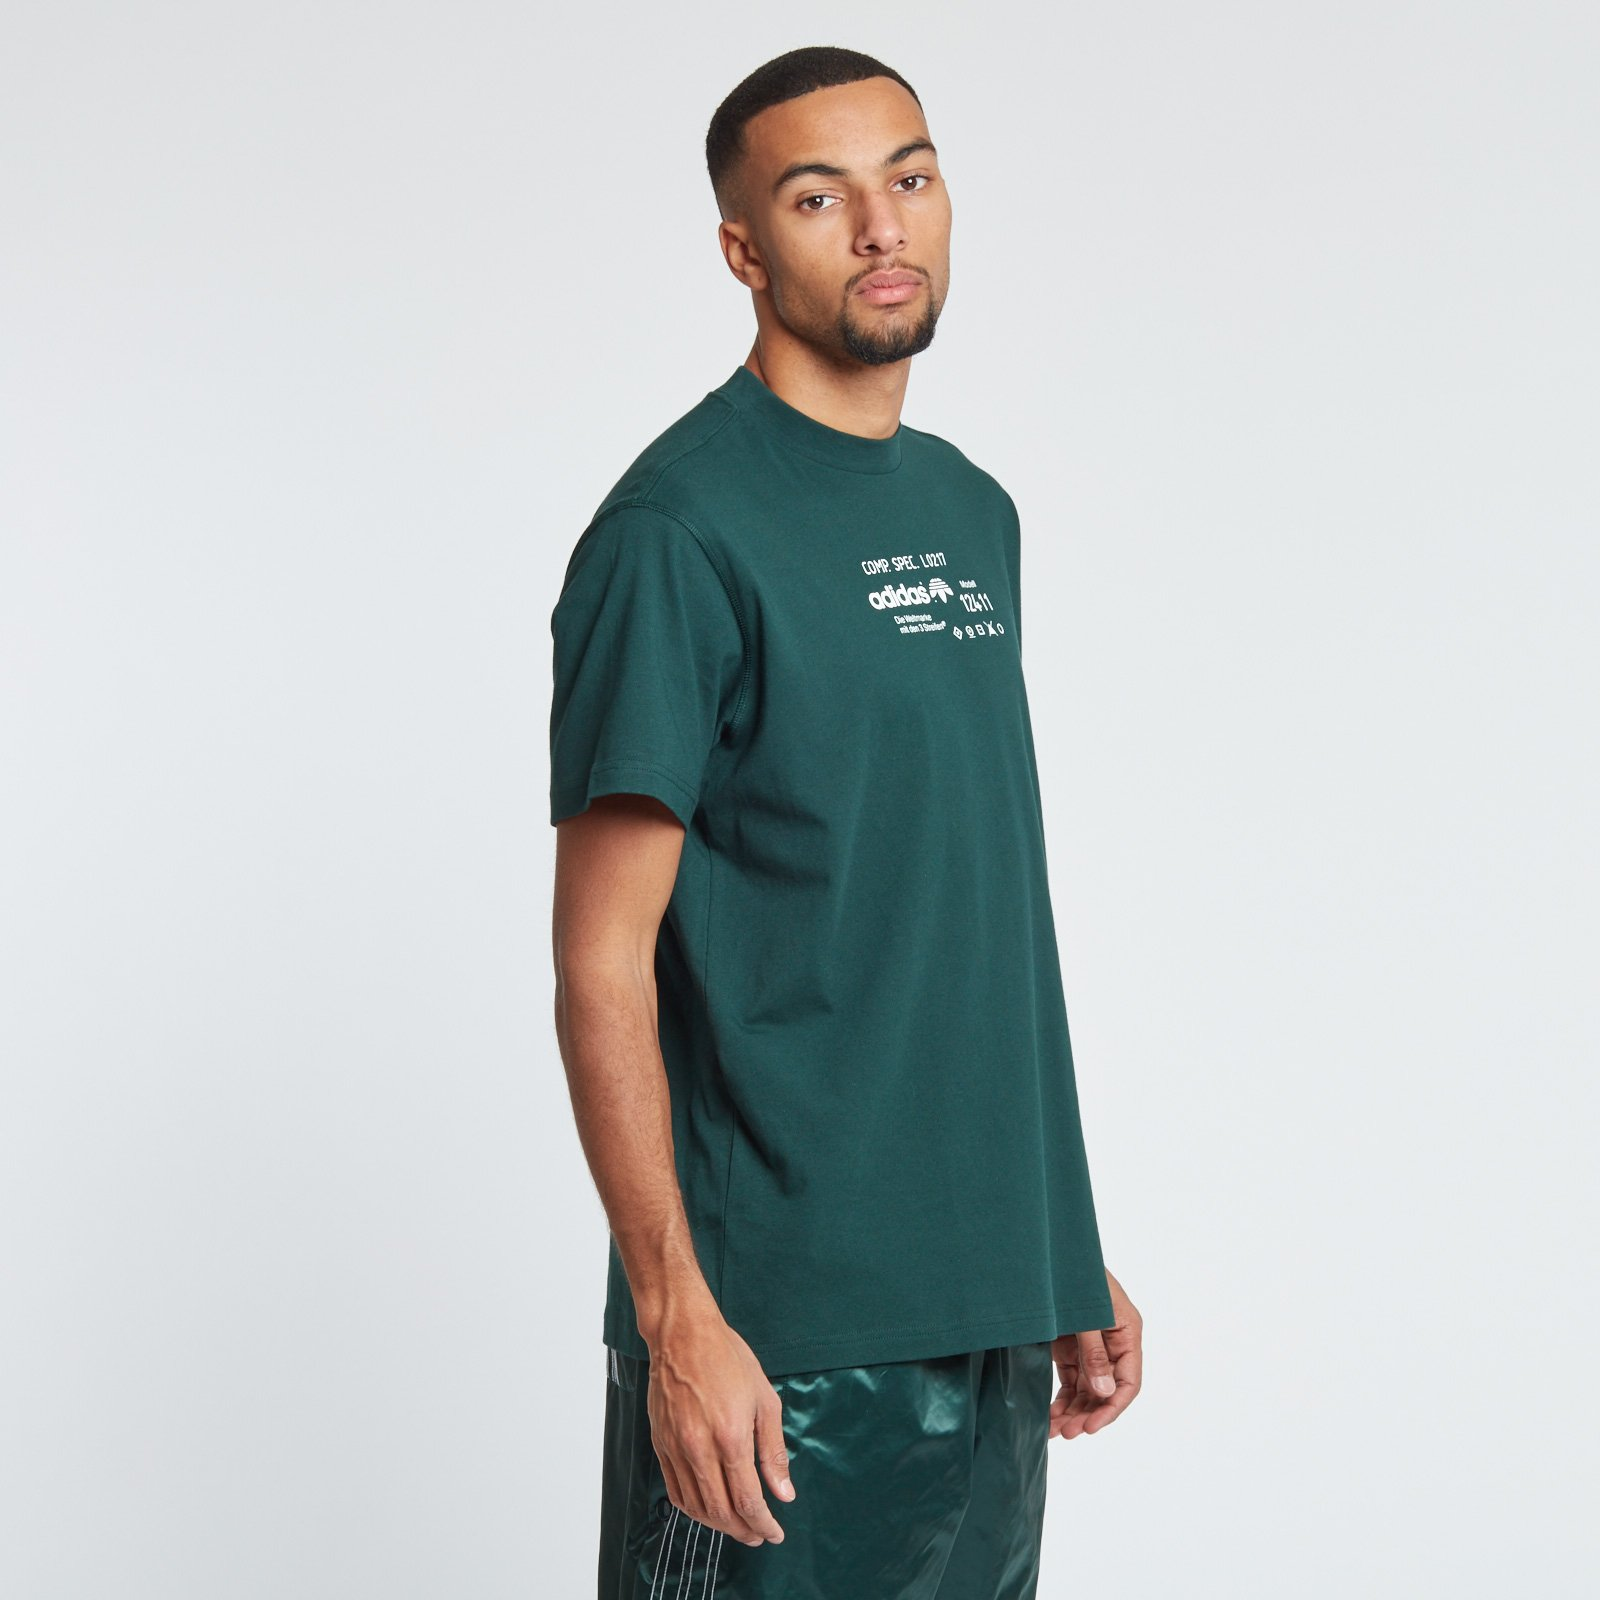 15ad85af adidas Graphic T-Shirt - Cv5281 - Sneakersnstuff | sneakers & streetwear  online since 1999